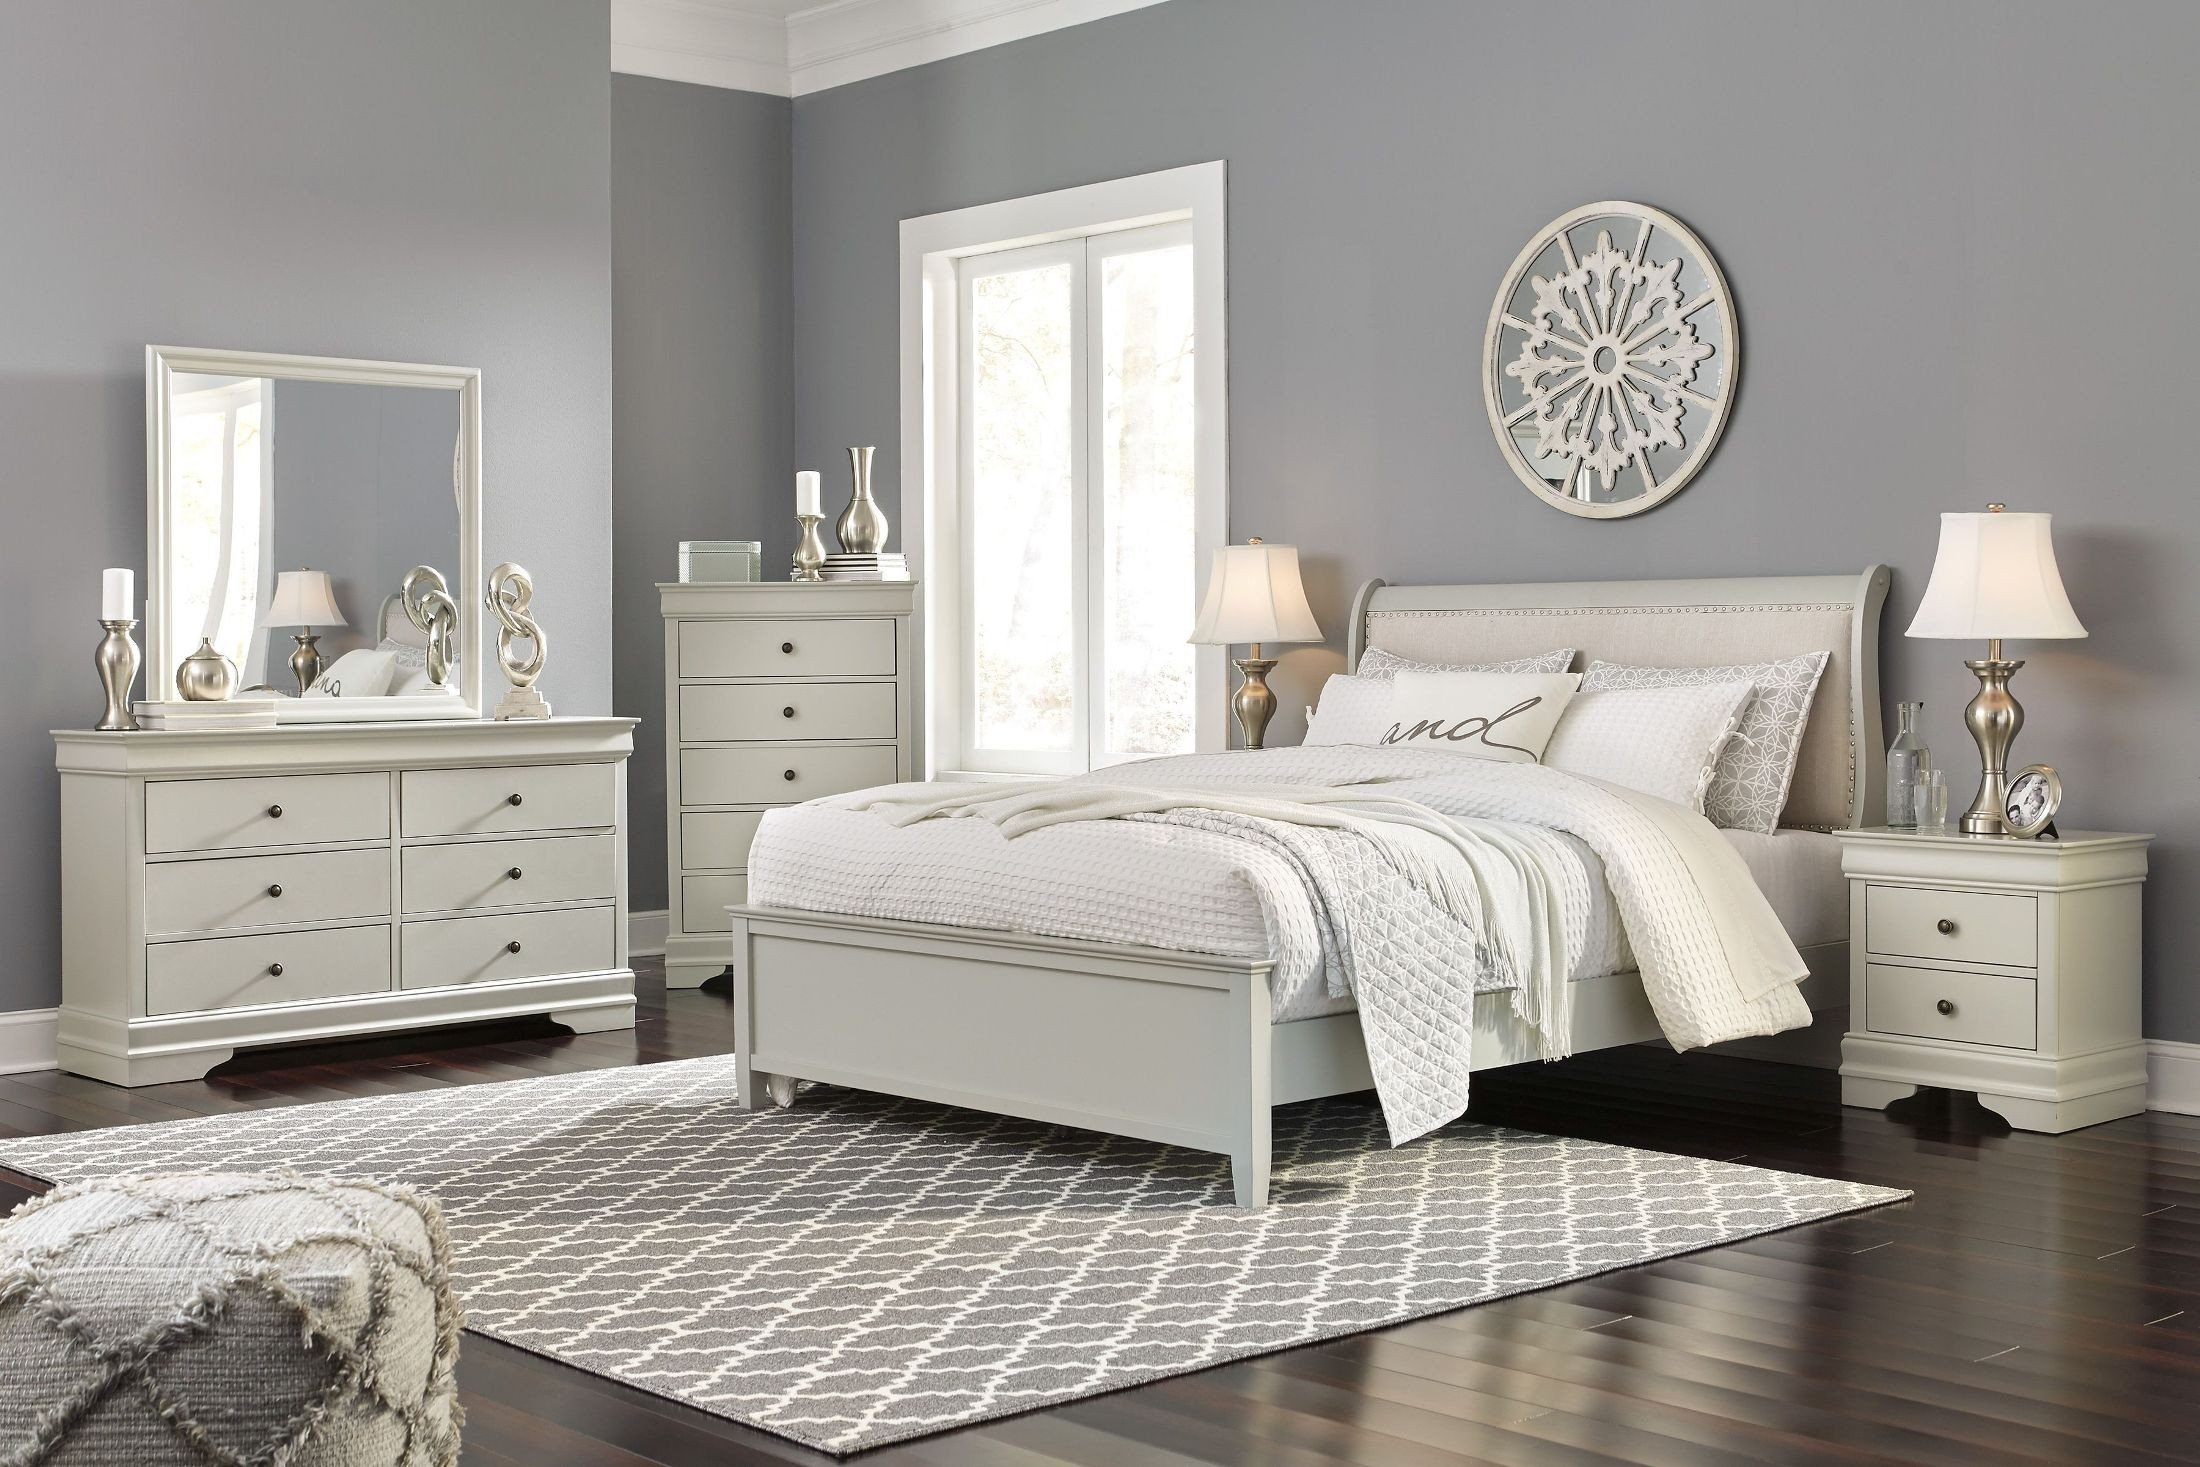 Bernhardt Bedroom Furniture Discontinued Fresh Emma Mason Signature Jarred 5 Piece Sleigh Bedroom Set In Gray